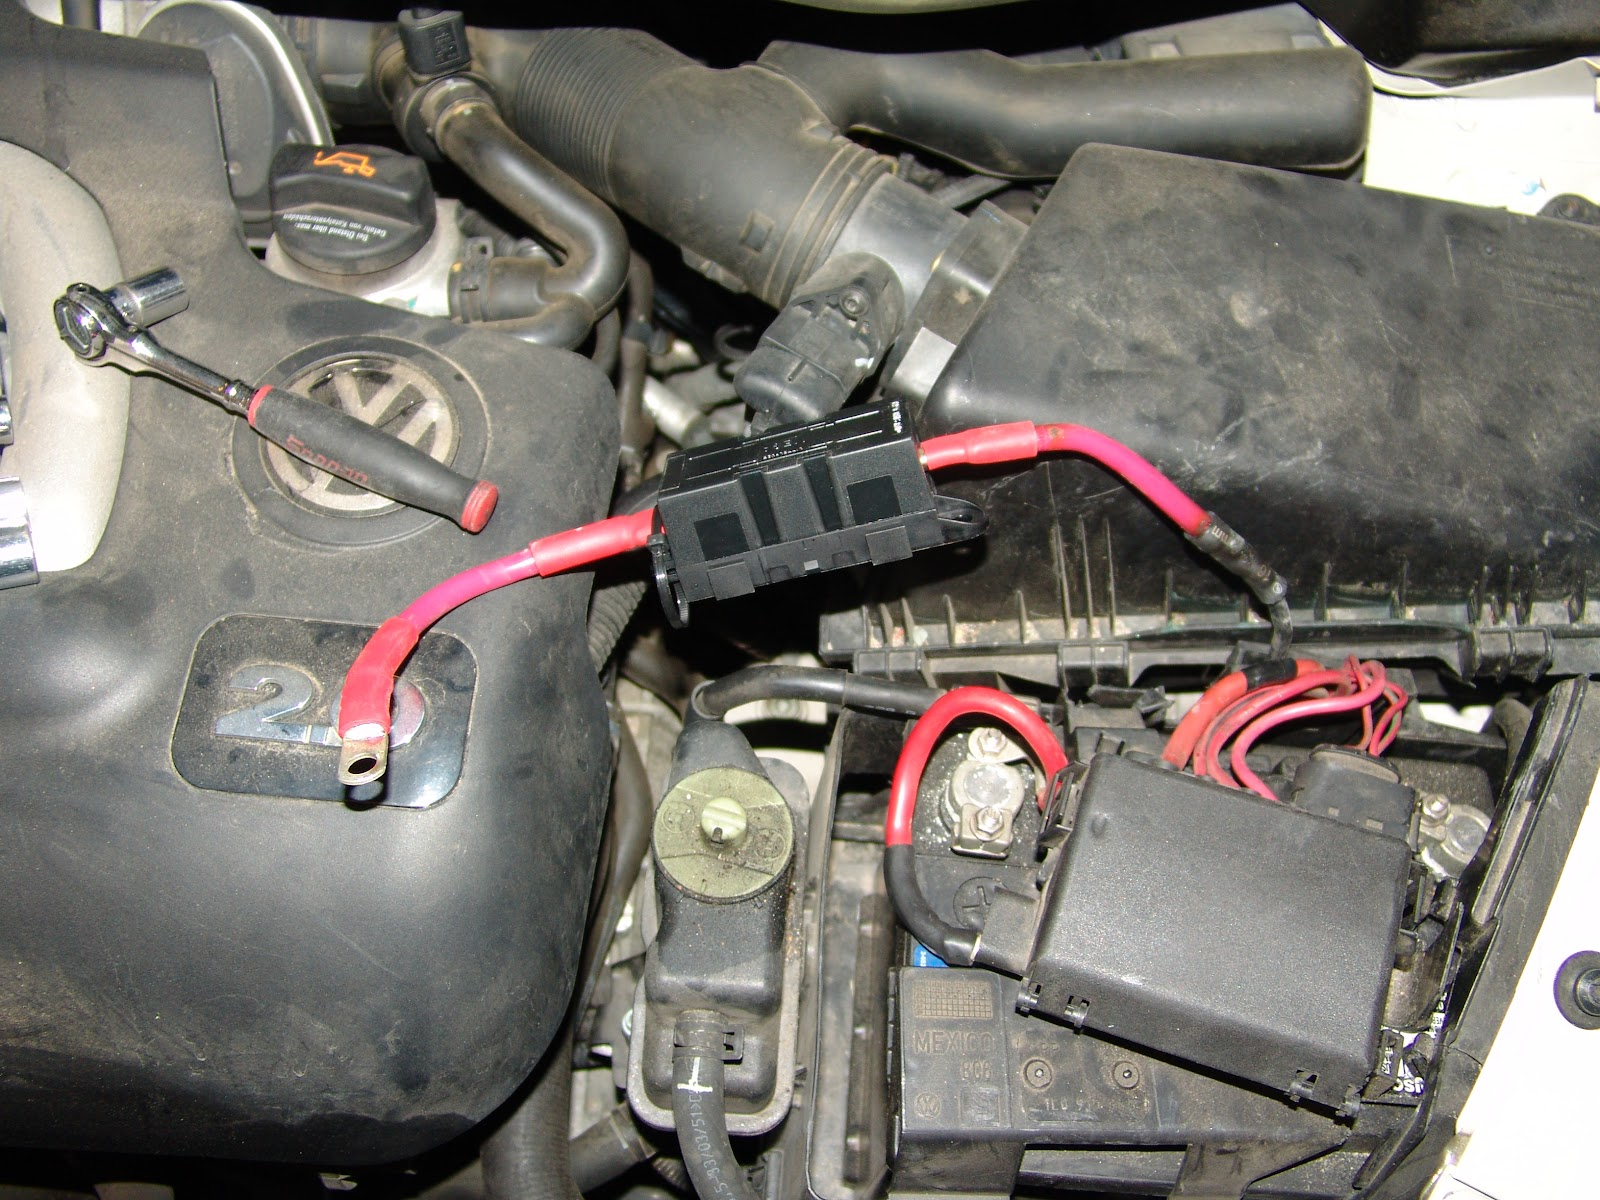 2007 Impala Fuse Box Cover : Chevy fuse box diagram get free image about wiring